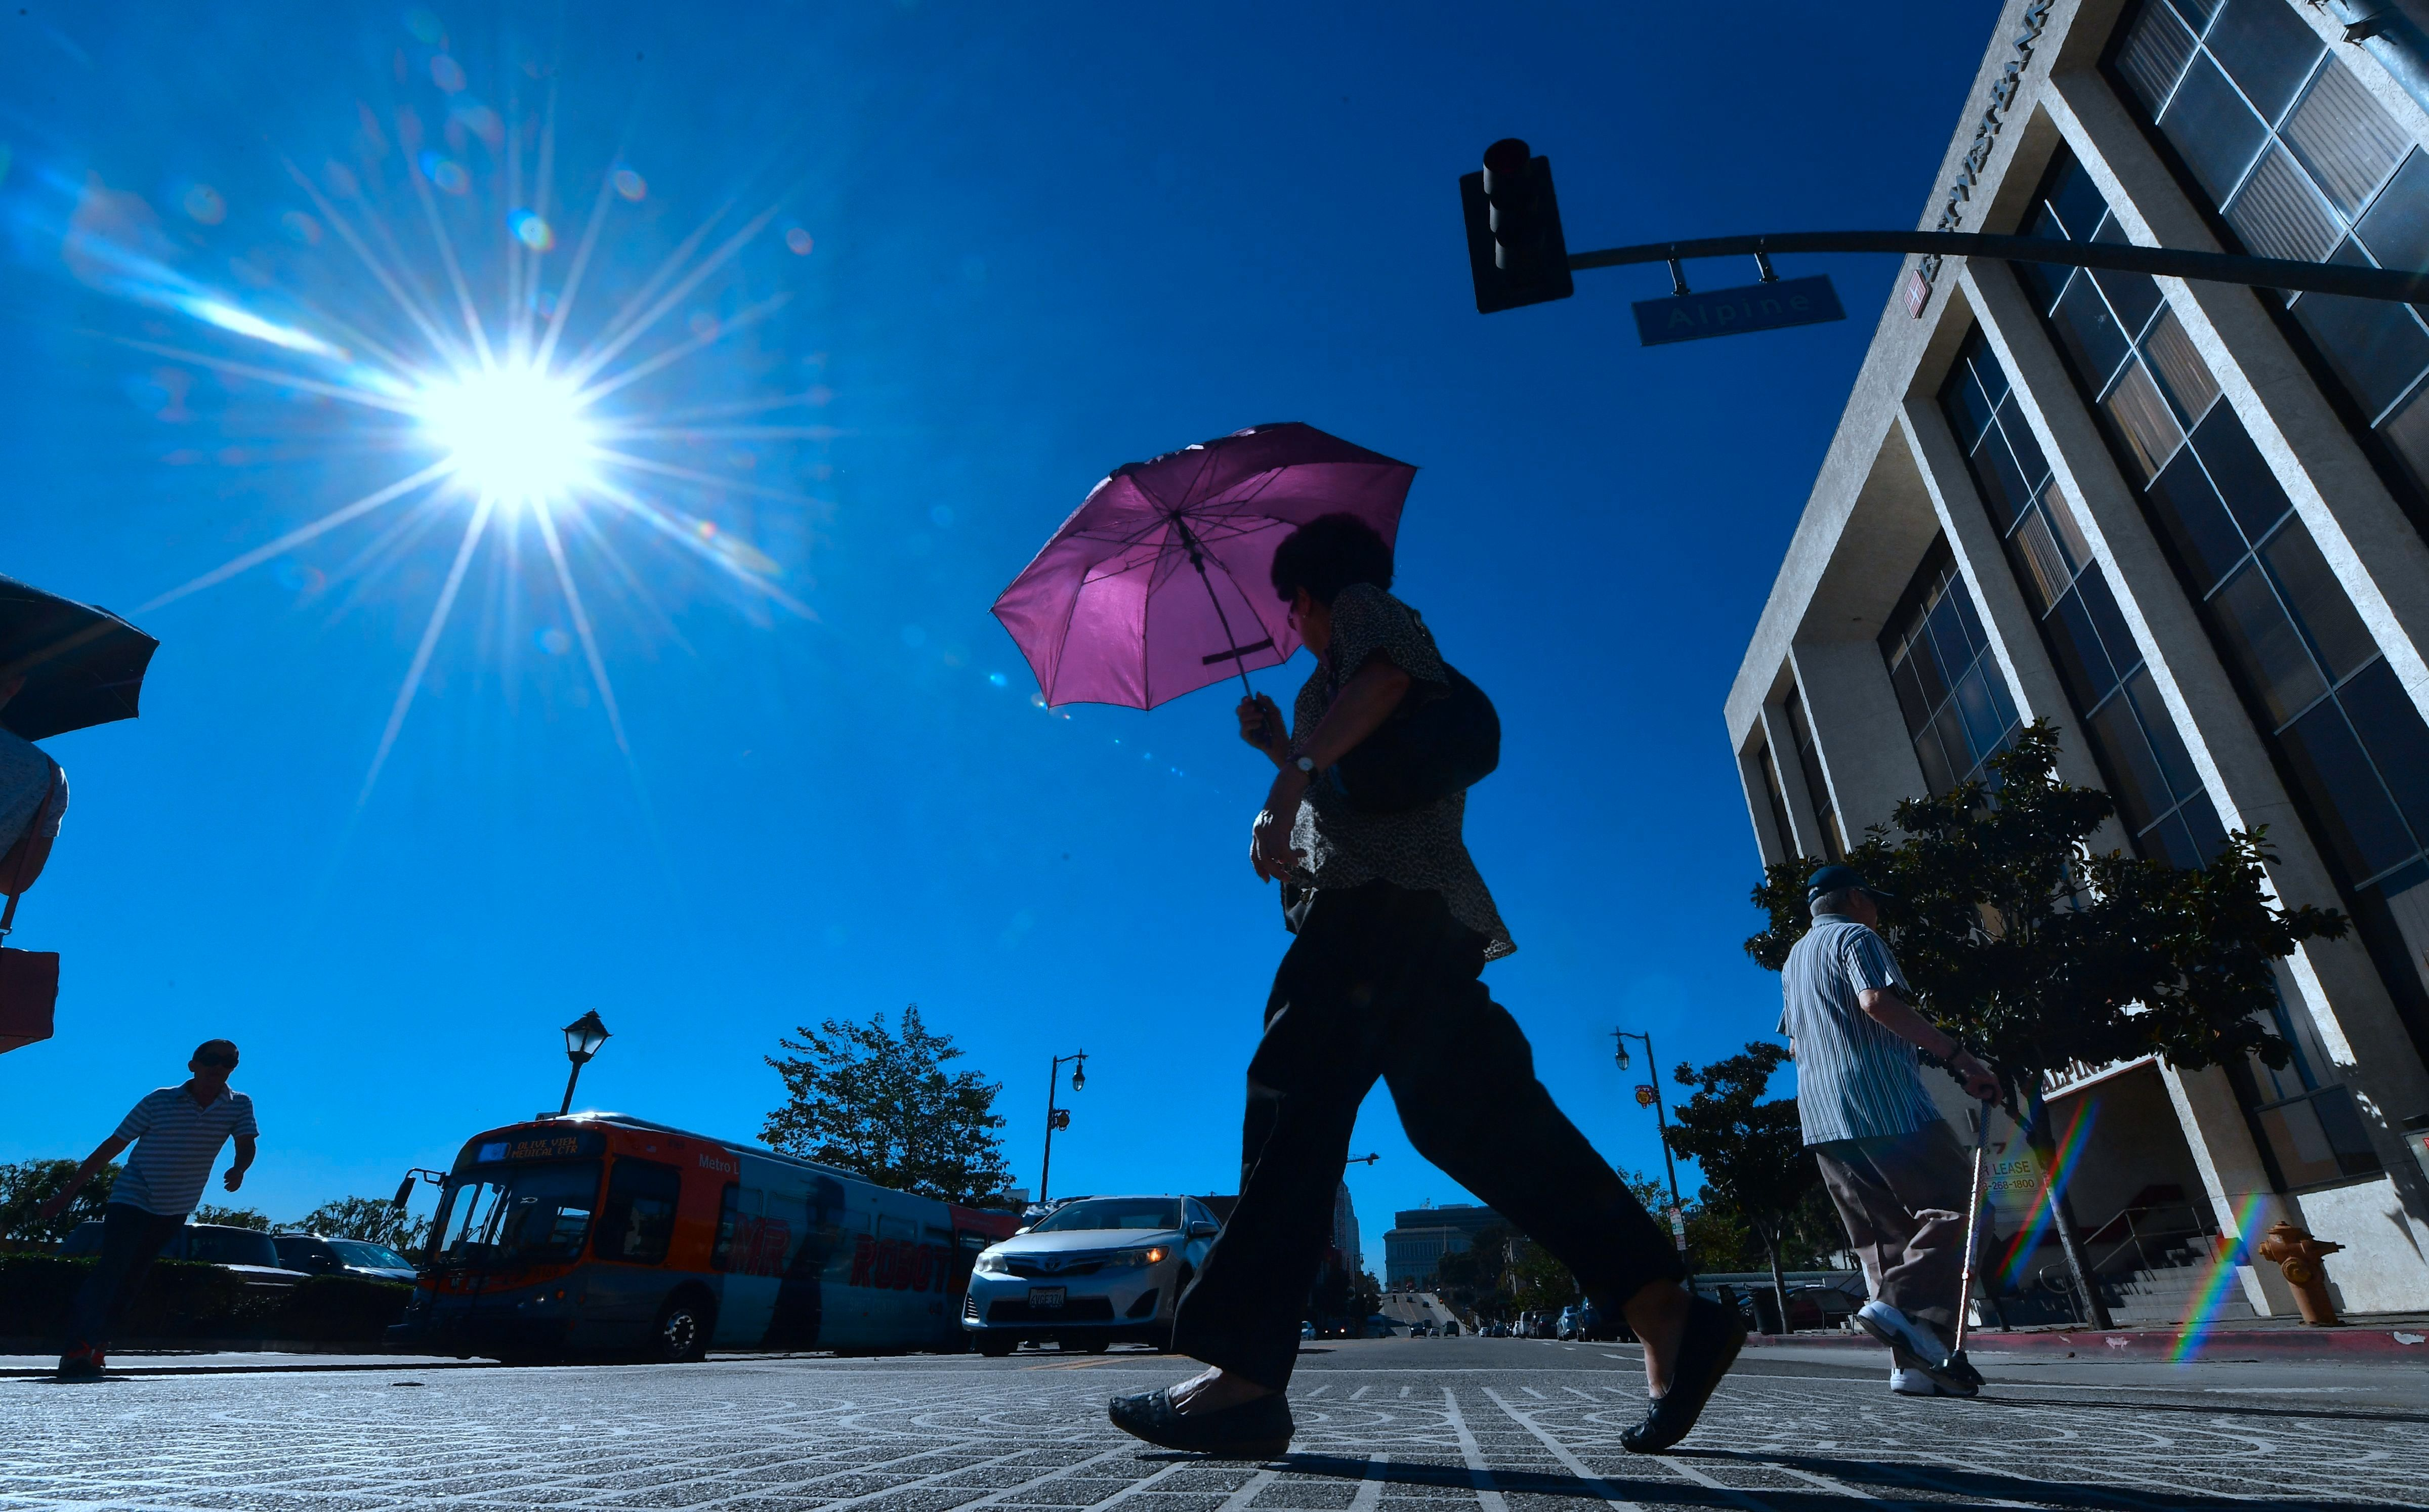 World Series weather forecast for Los Angeles calls for lots of heat